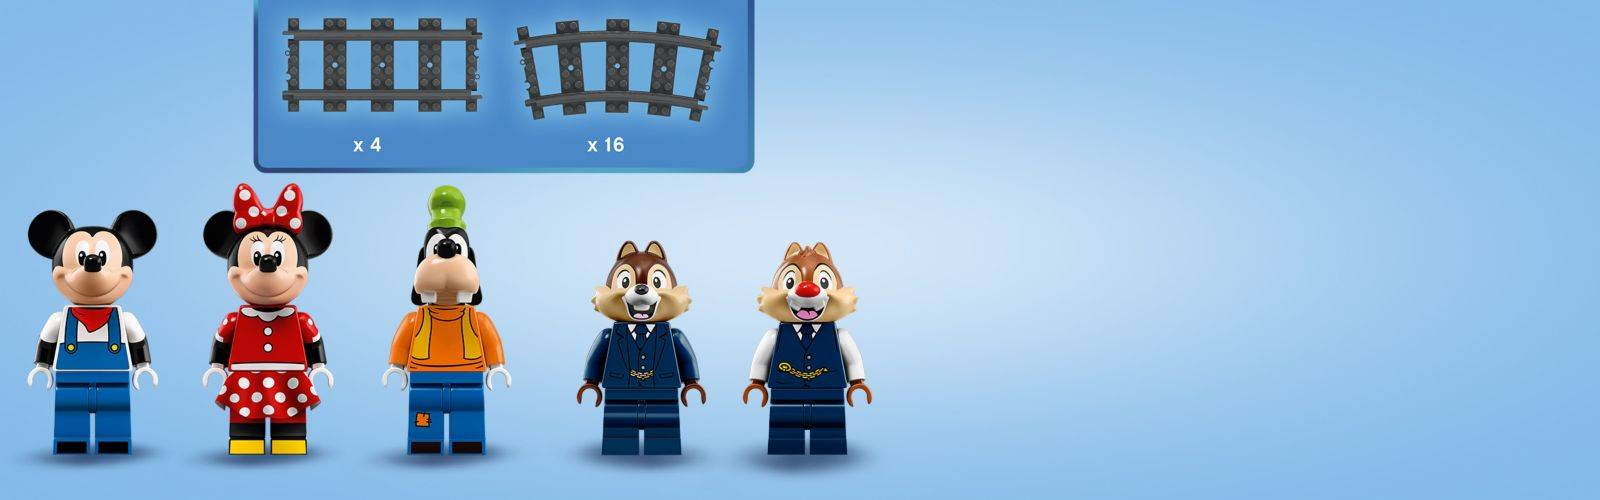 LEGO Disney Train And Station 71044 Minifigures